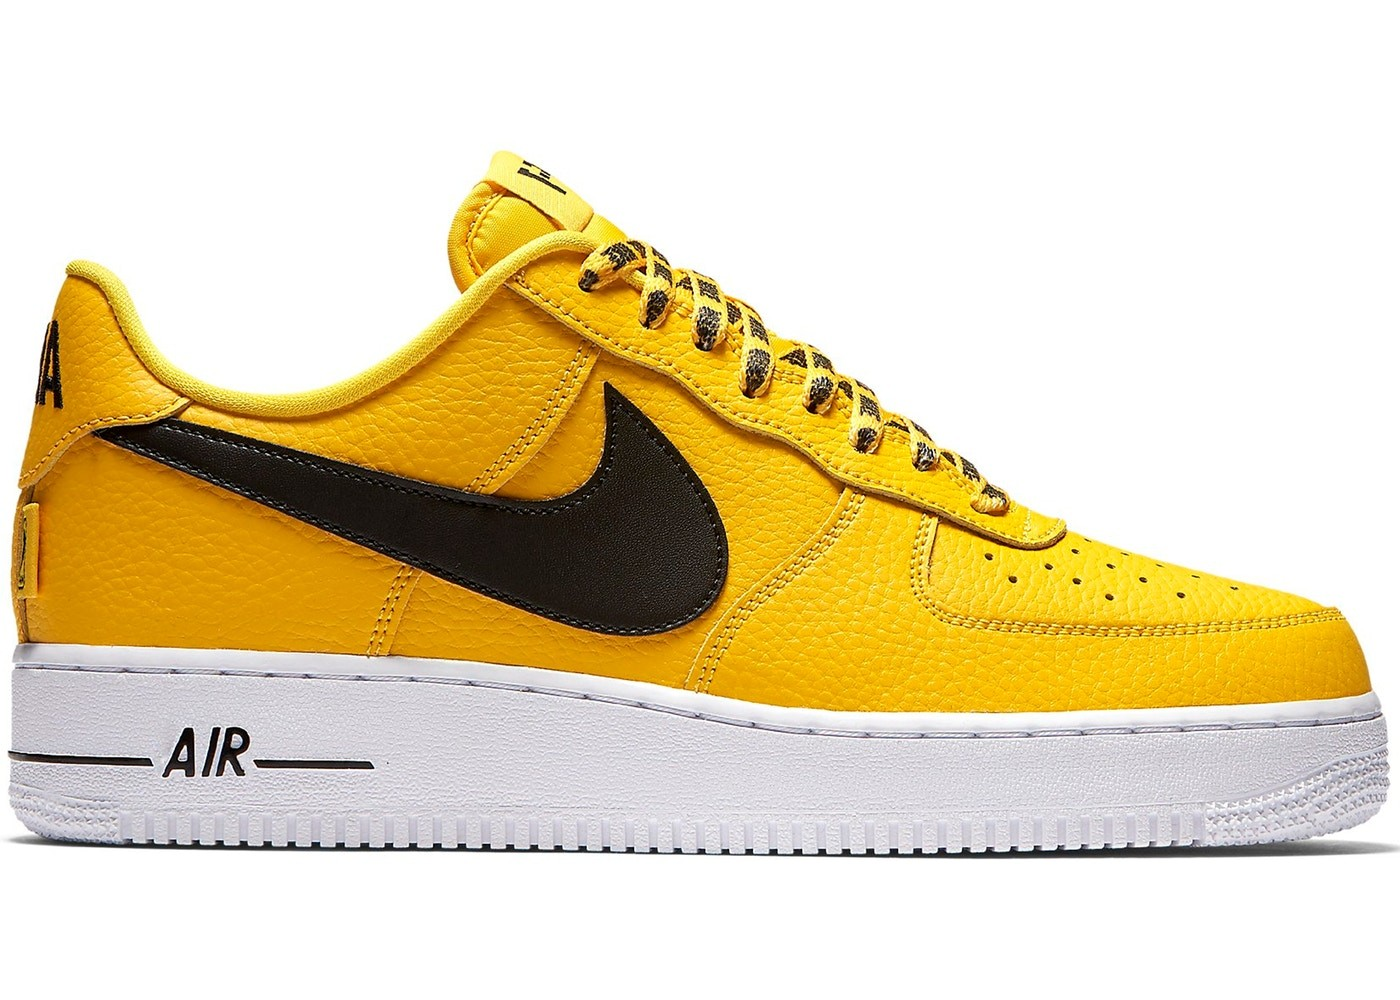 Nike Air Force 1 Low Jaune/Noir Homme 823511-701